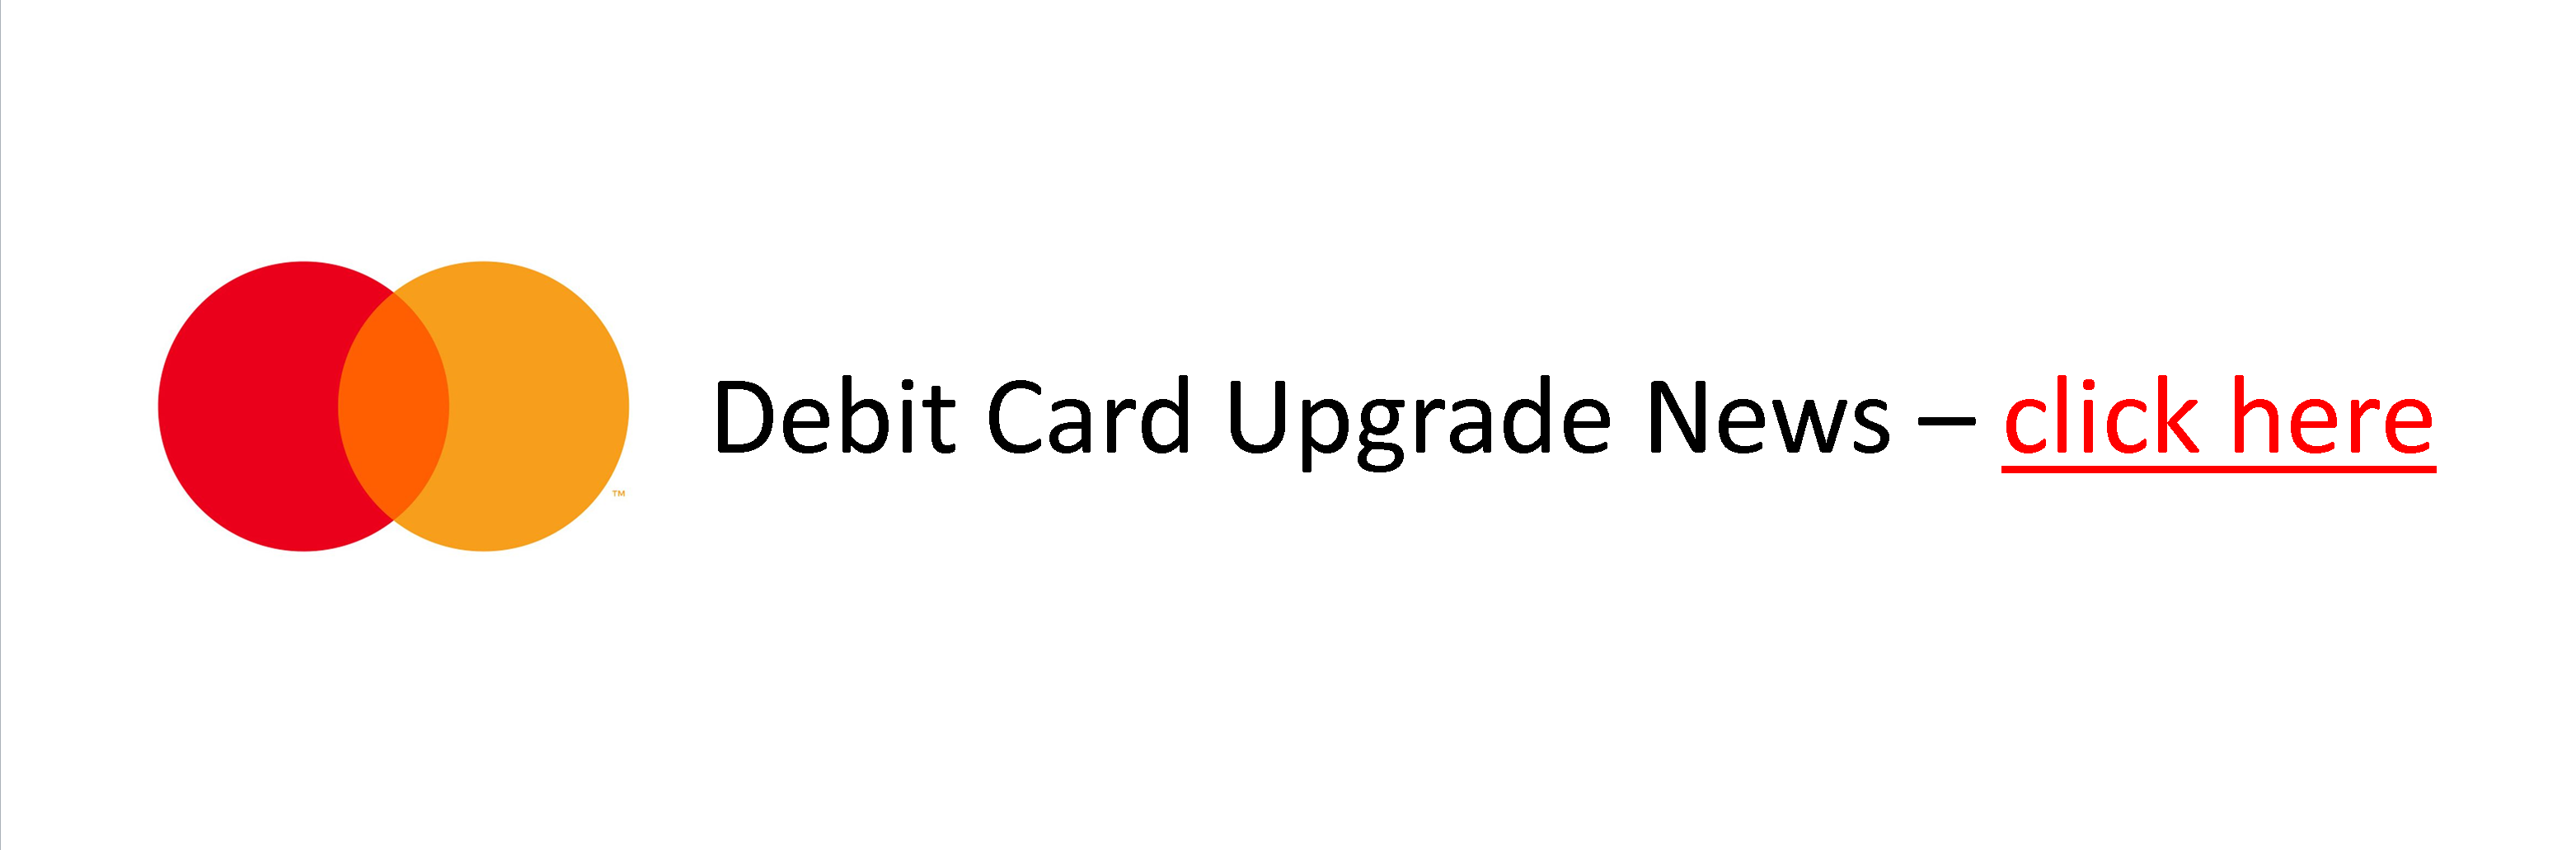 Debit Card Upgrade - click here for Info